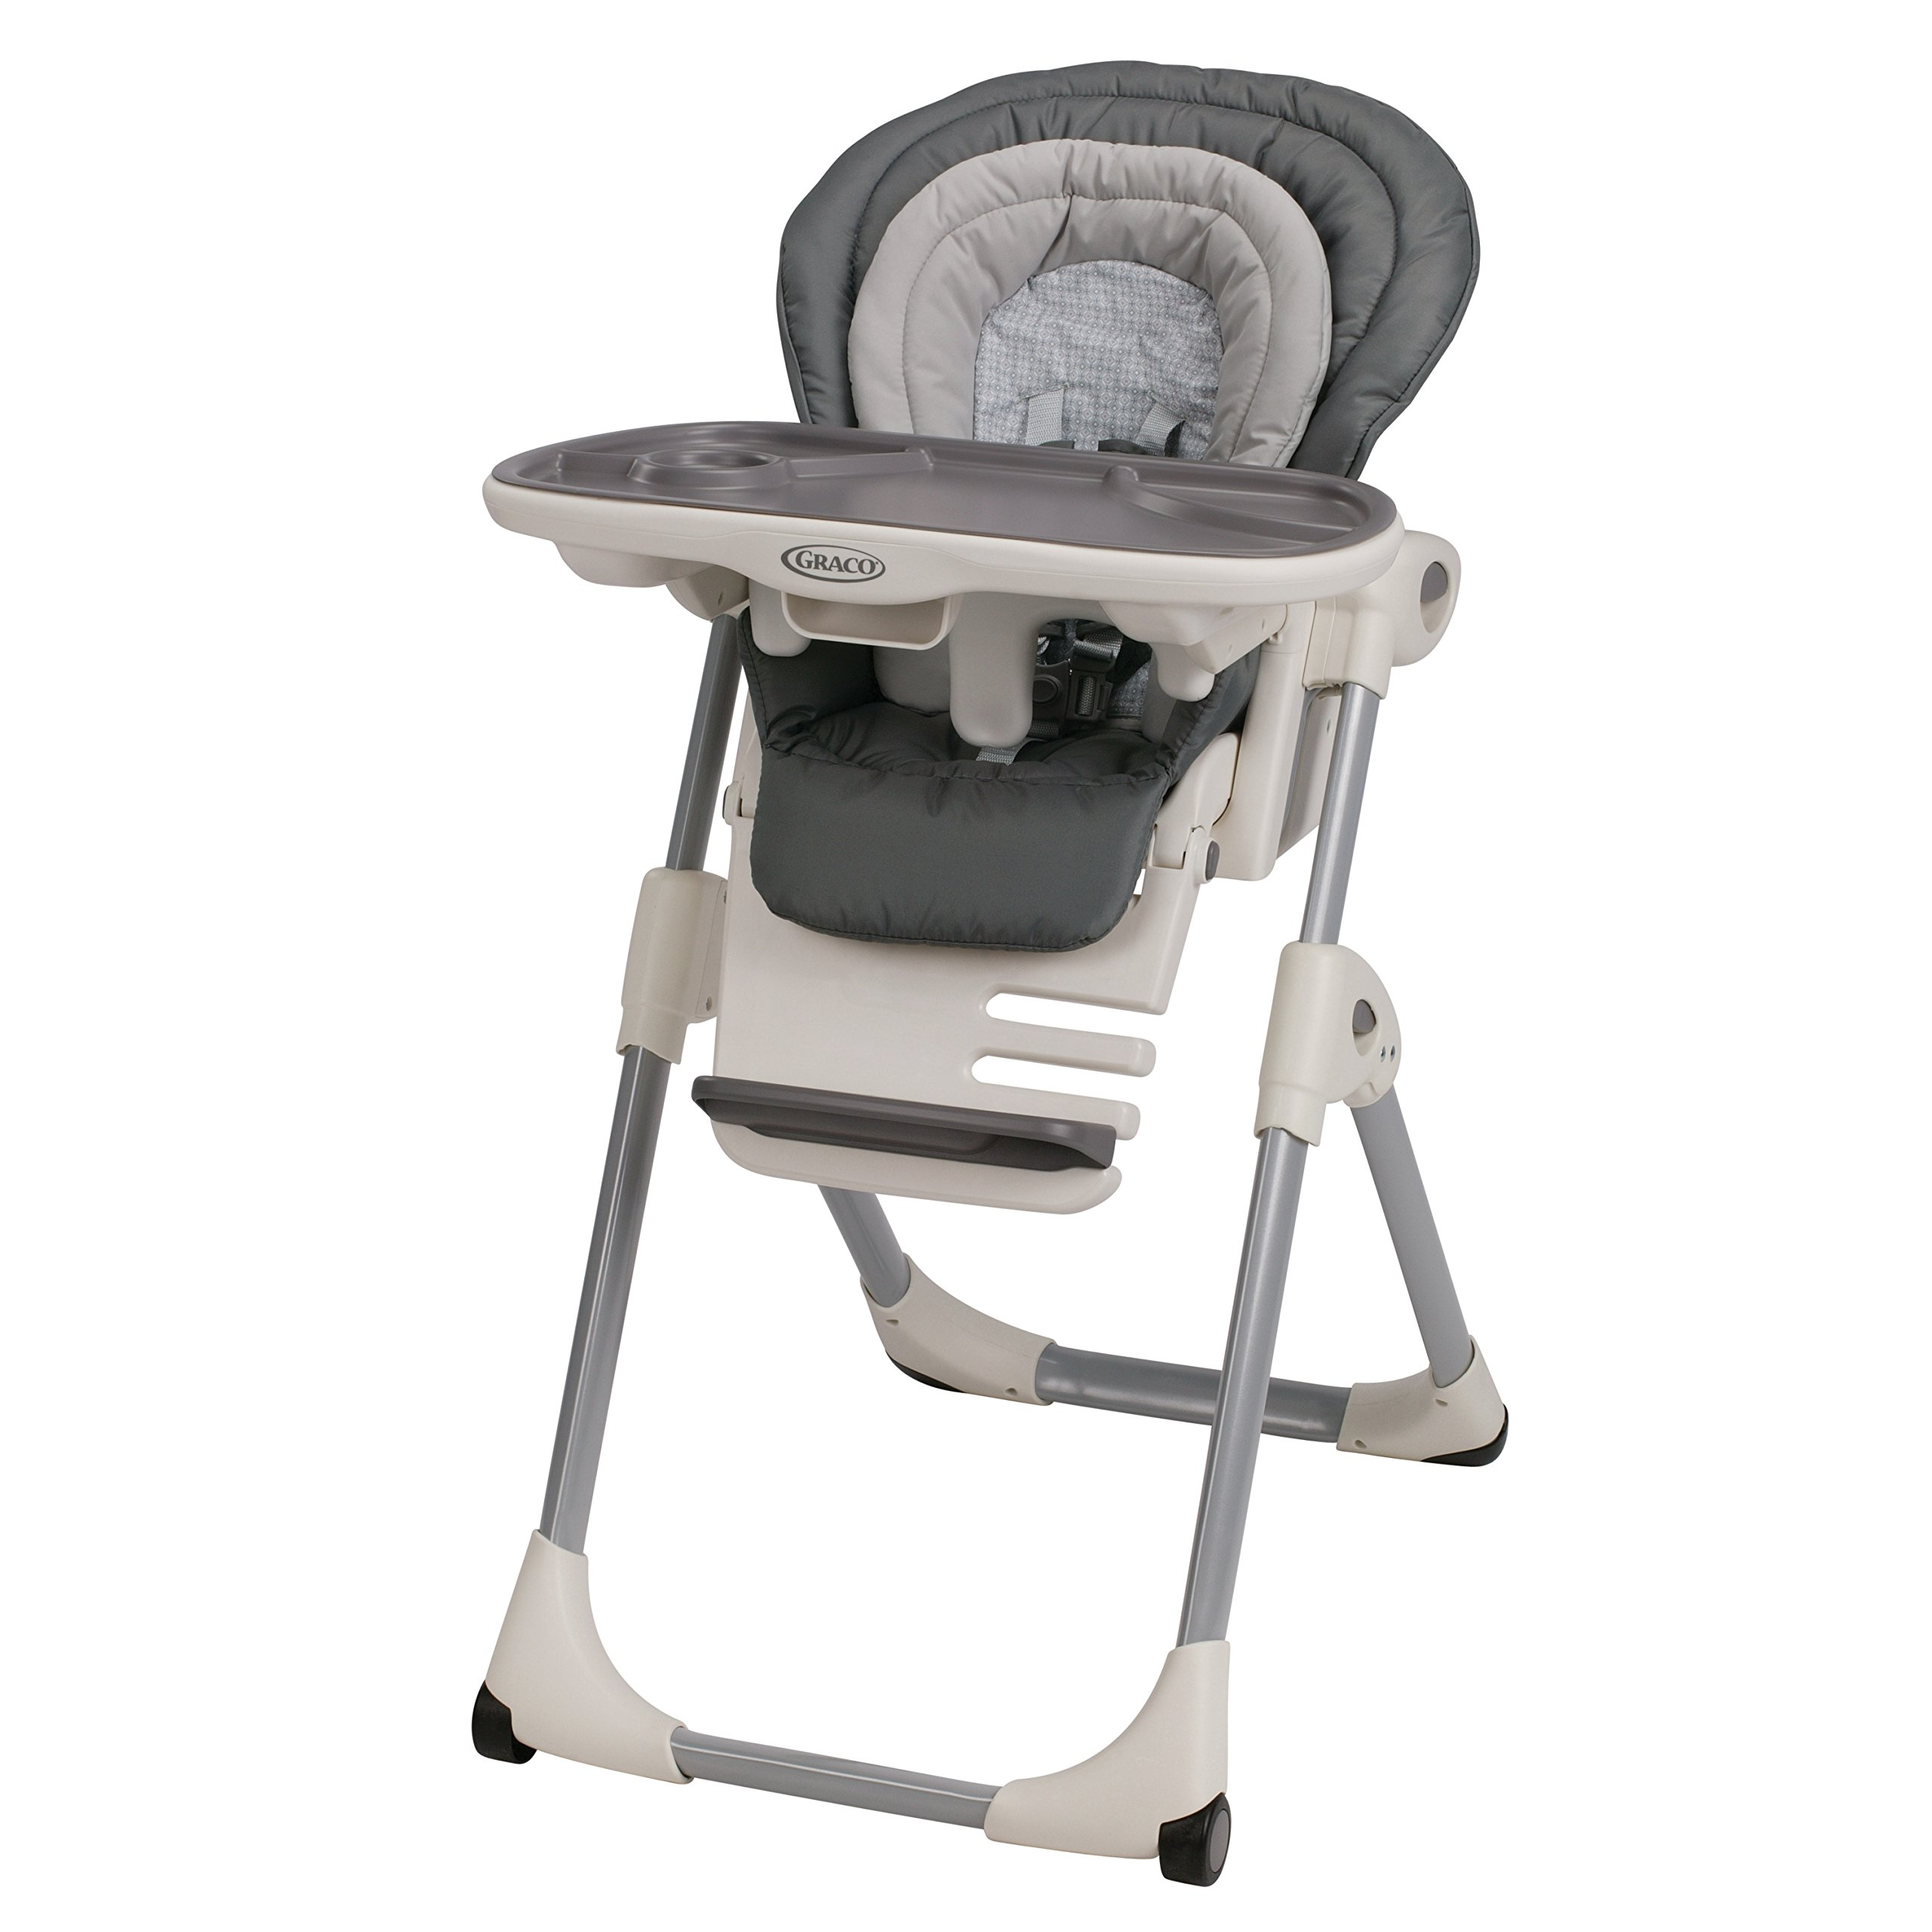 Graco Souffle High Chair, Glacier